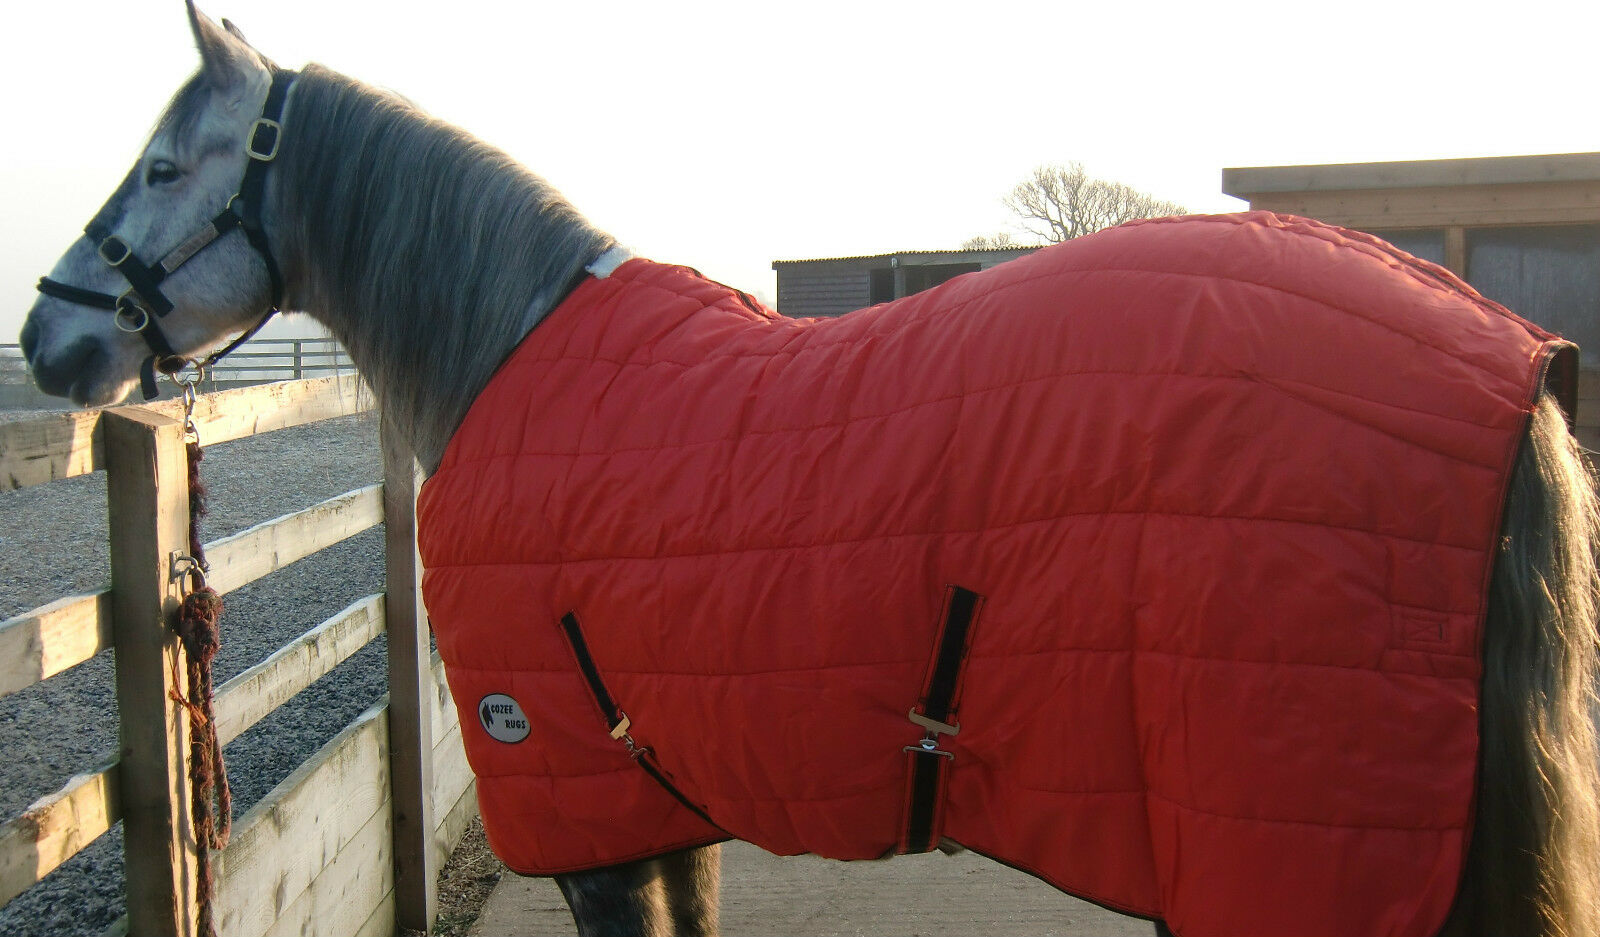 The New Forest Heavy Weight Stable Rug Rug Stable generous fit for warmth. Only 55391a